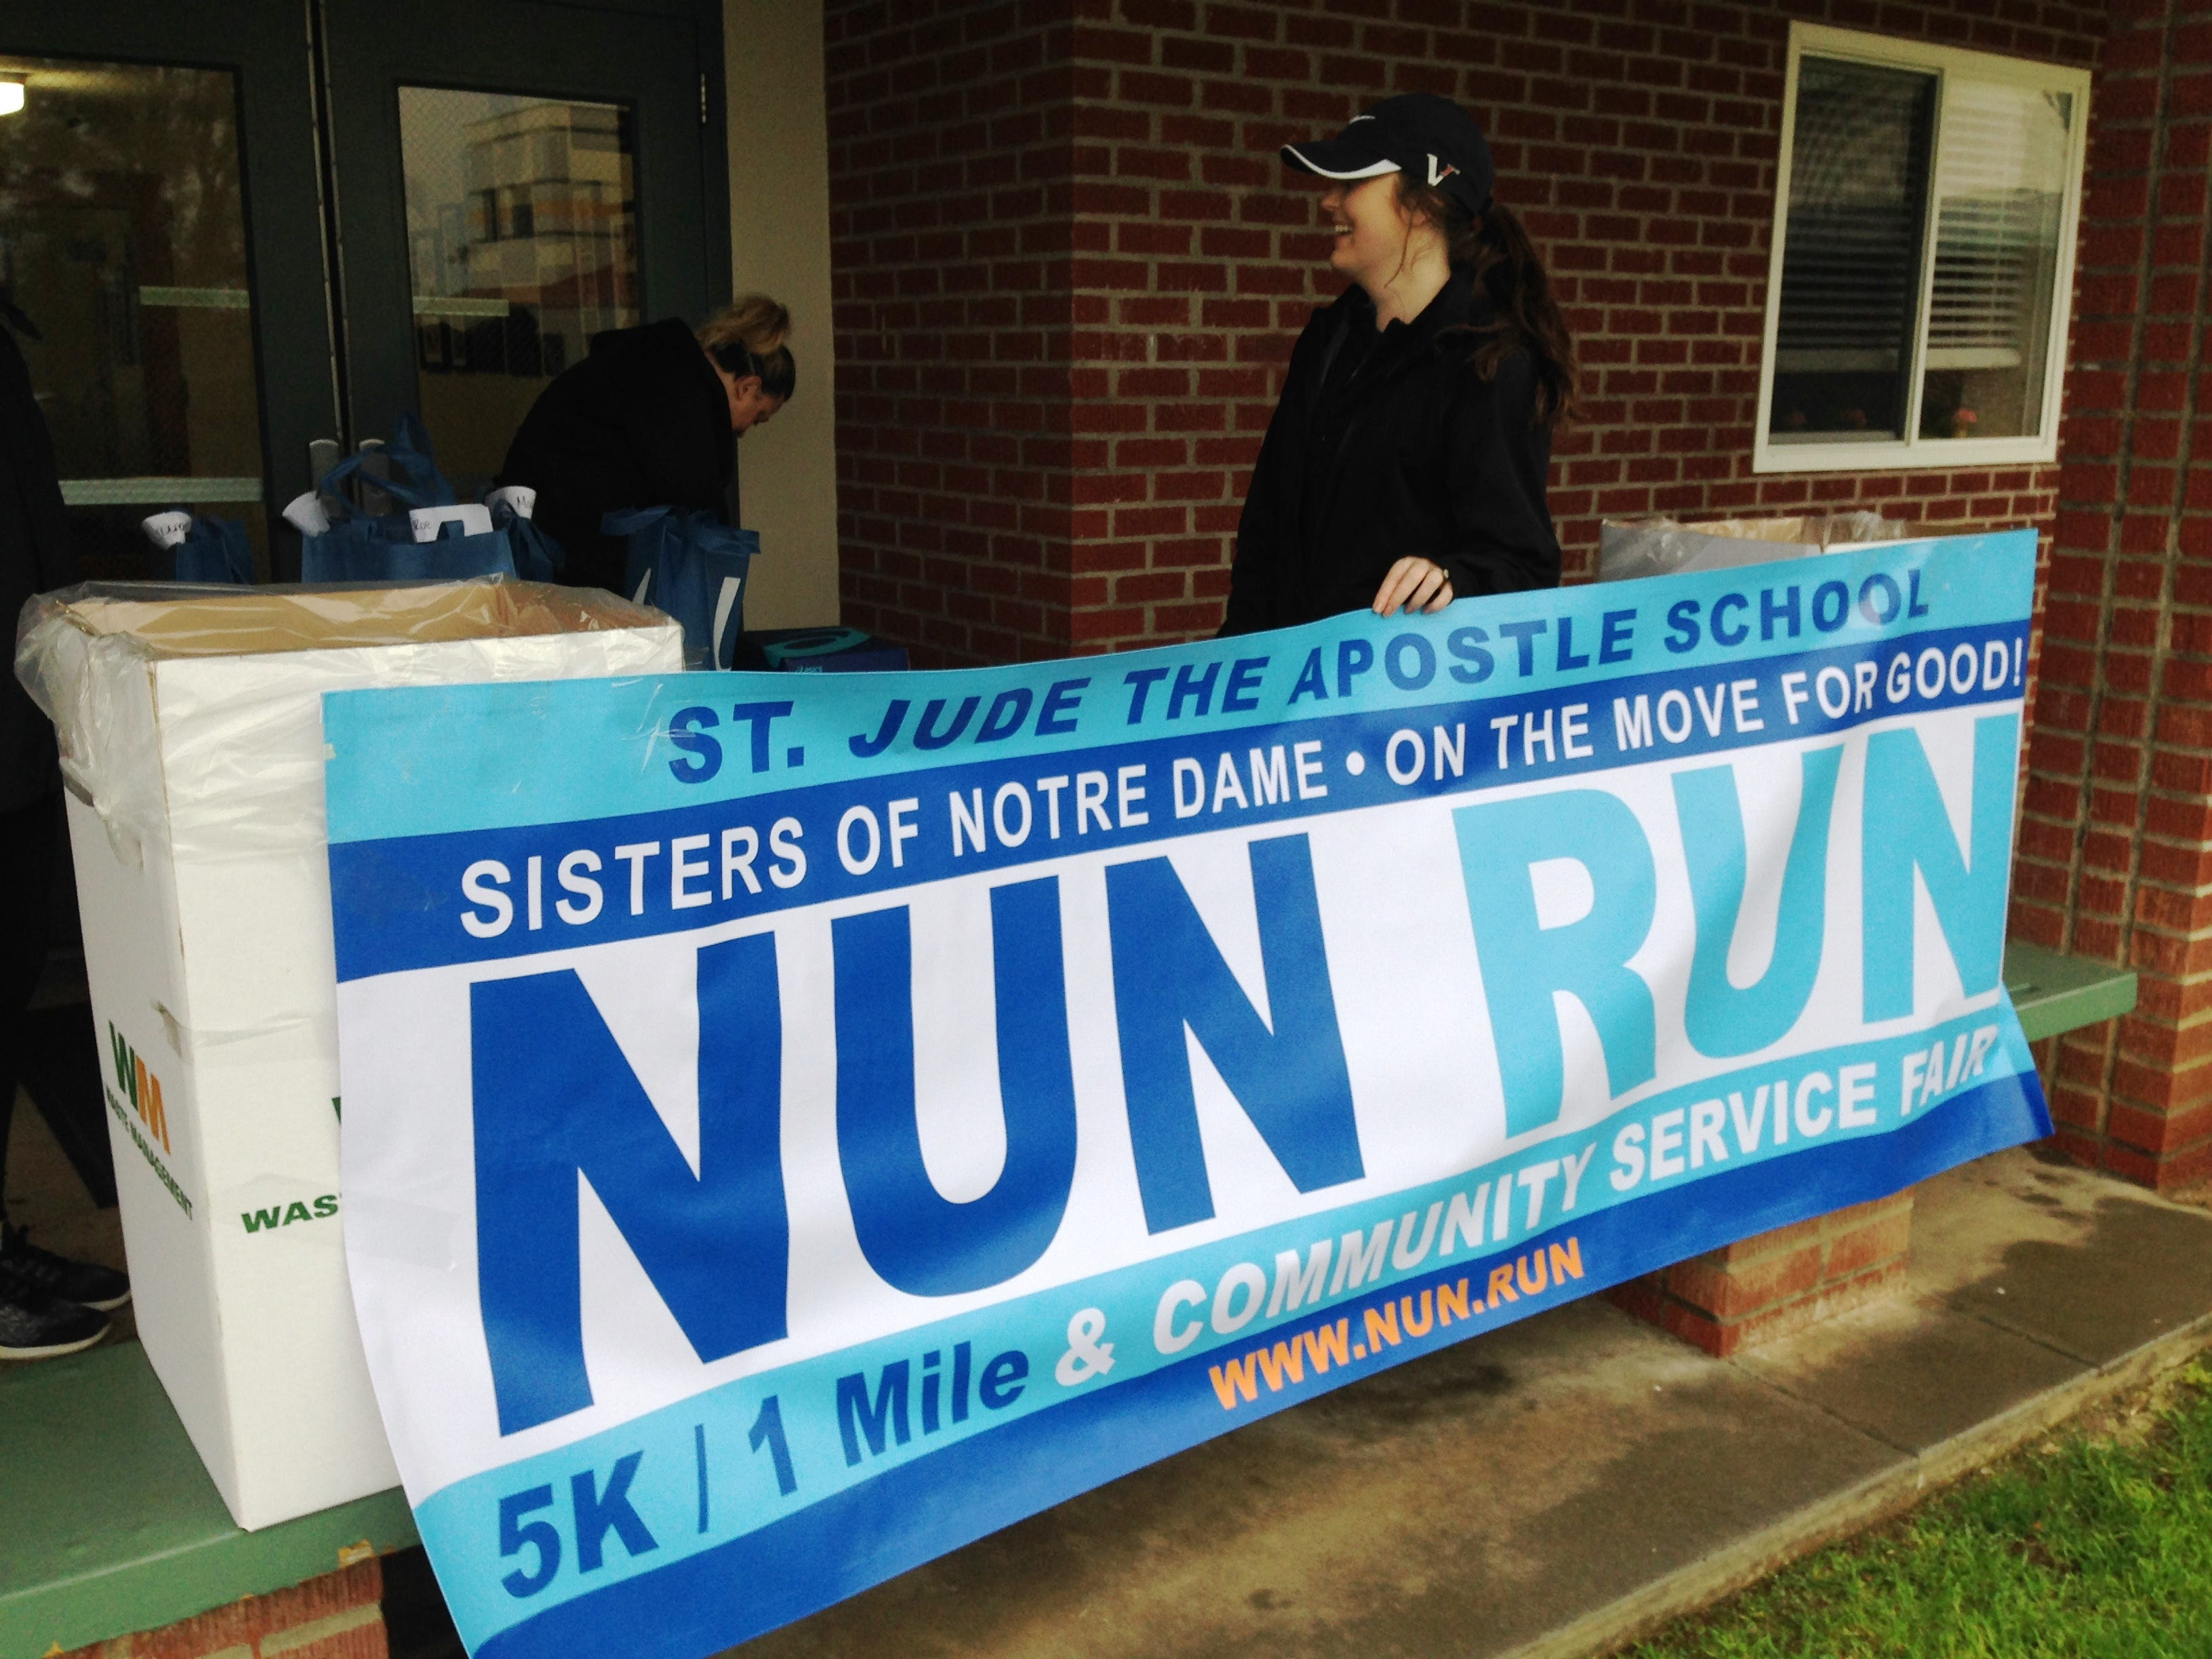 Kaitlyn Wilson, a teacher at St. Jude the Apostle School, was among hundreds of people who came to support the fifth annual Sisters of Notre Dame Nun Run, presented by La Reina High School and Middle School in Thousand Oaks on Saturday.